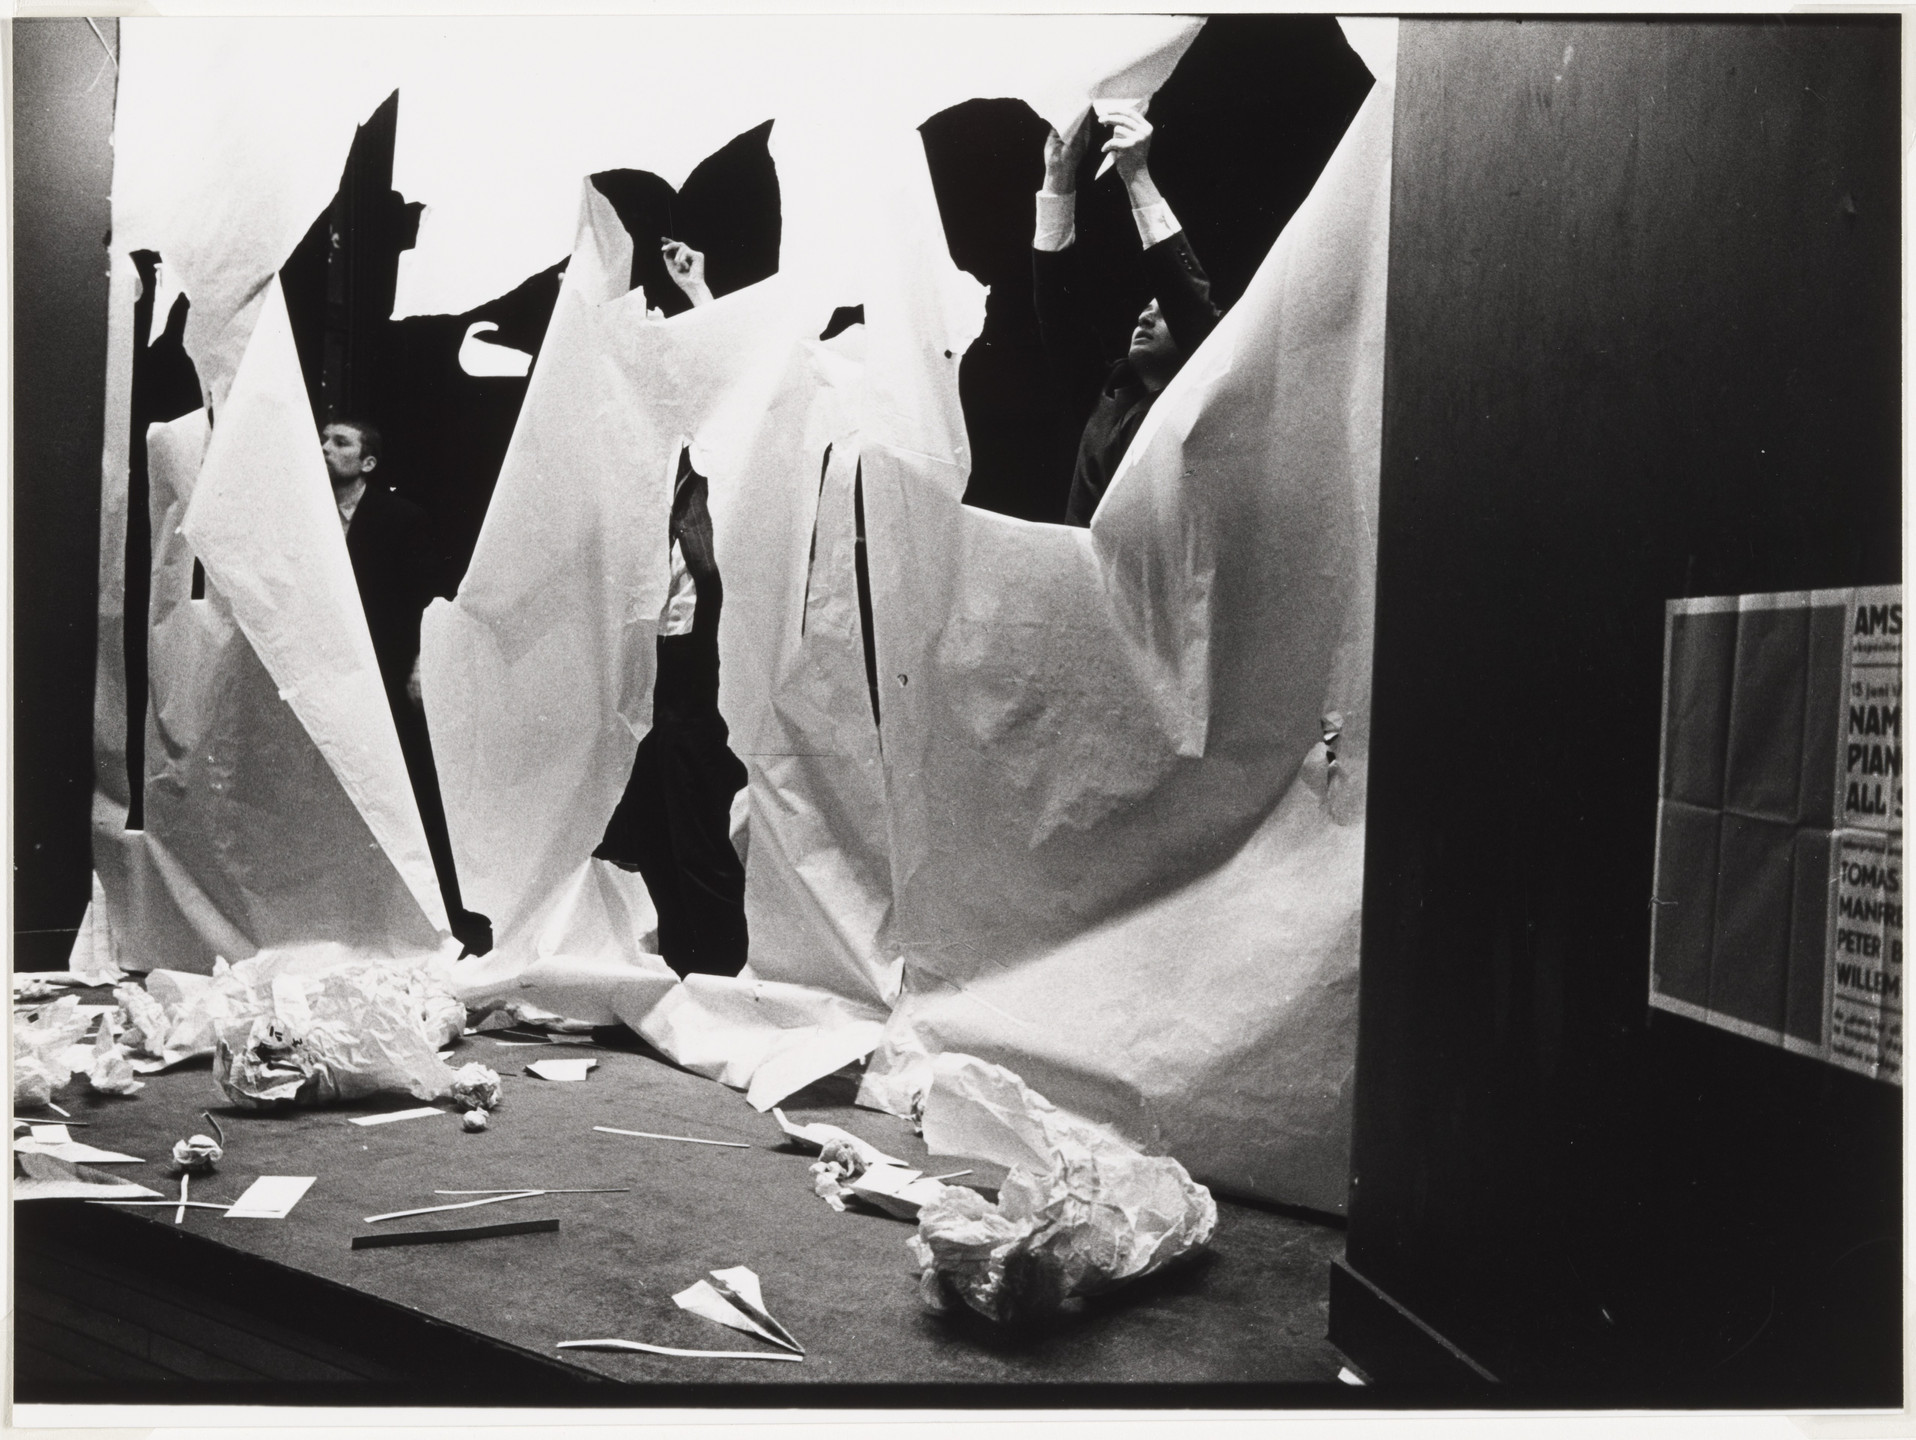 Benjamin Patterson. Benjamin Patterson's Paper Piece (1960), performed during Fluxus Festival/Theatre Compositions/Street Compositions/Exhibits/Electronic Music, Hypokriterion Theater, Amsterdam, June 23, 1963. 1963